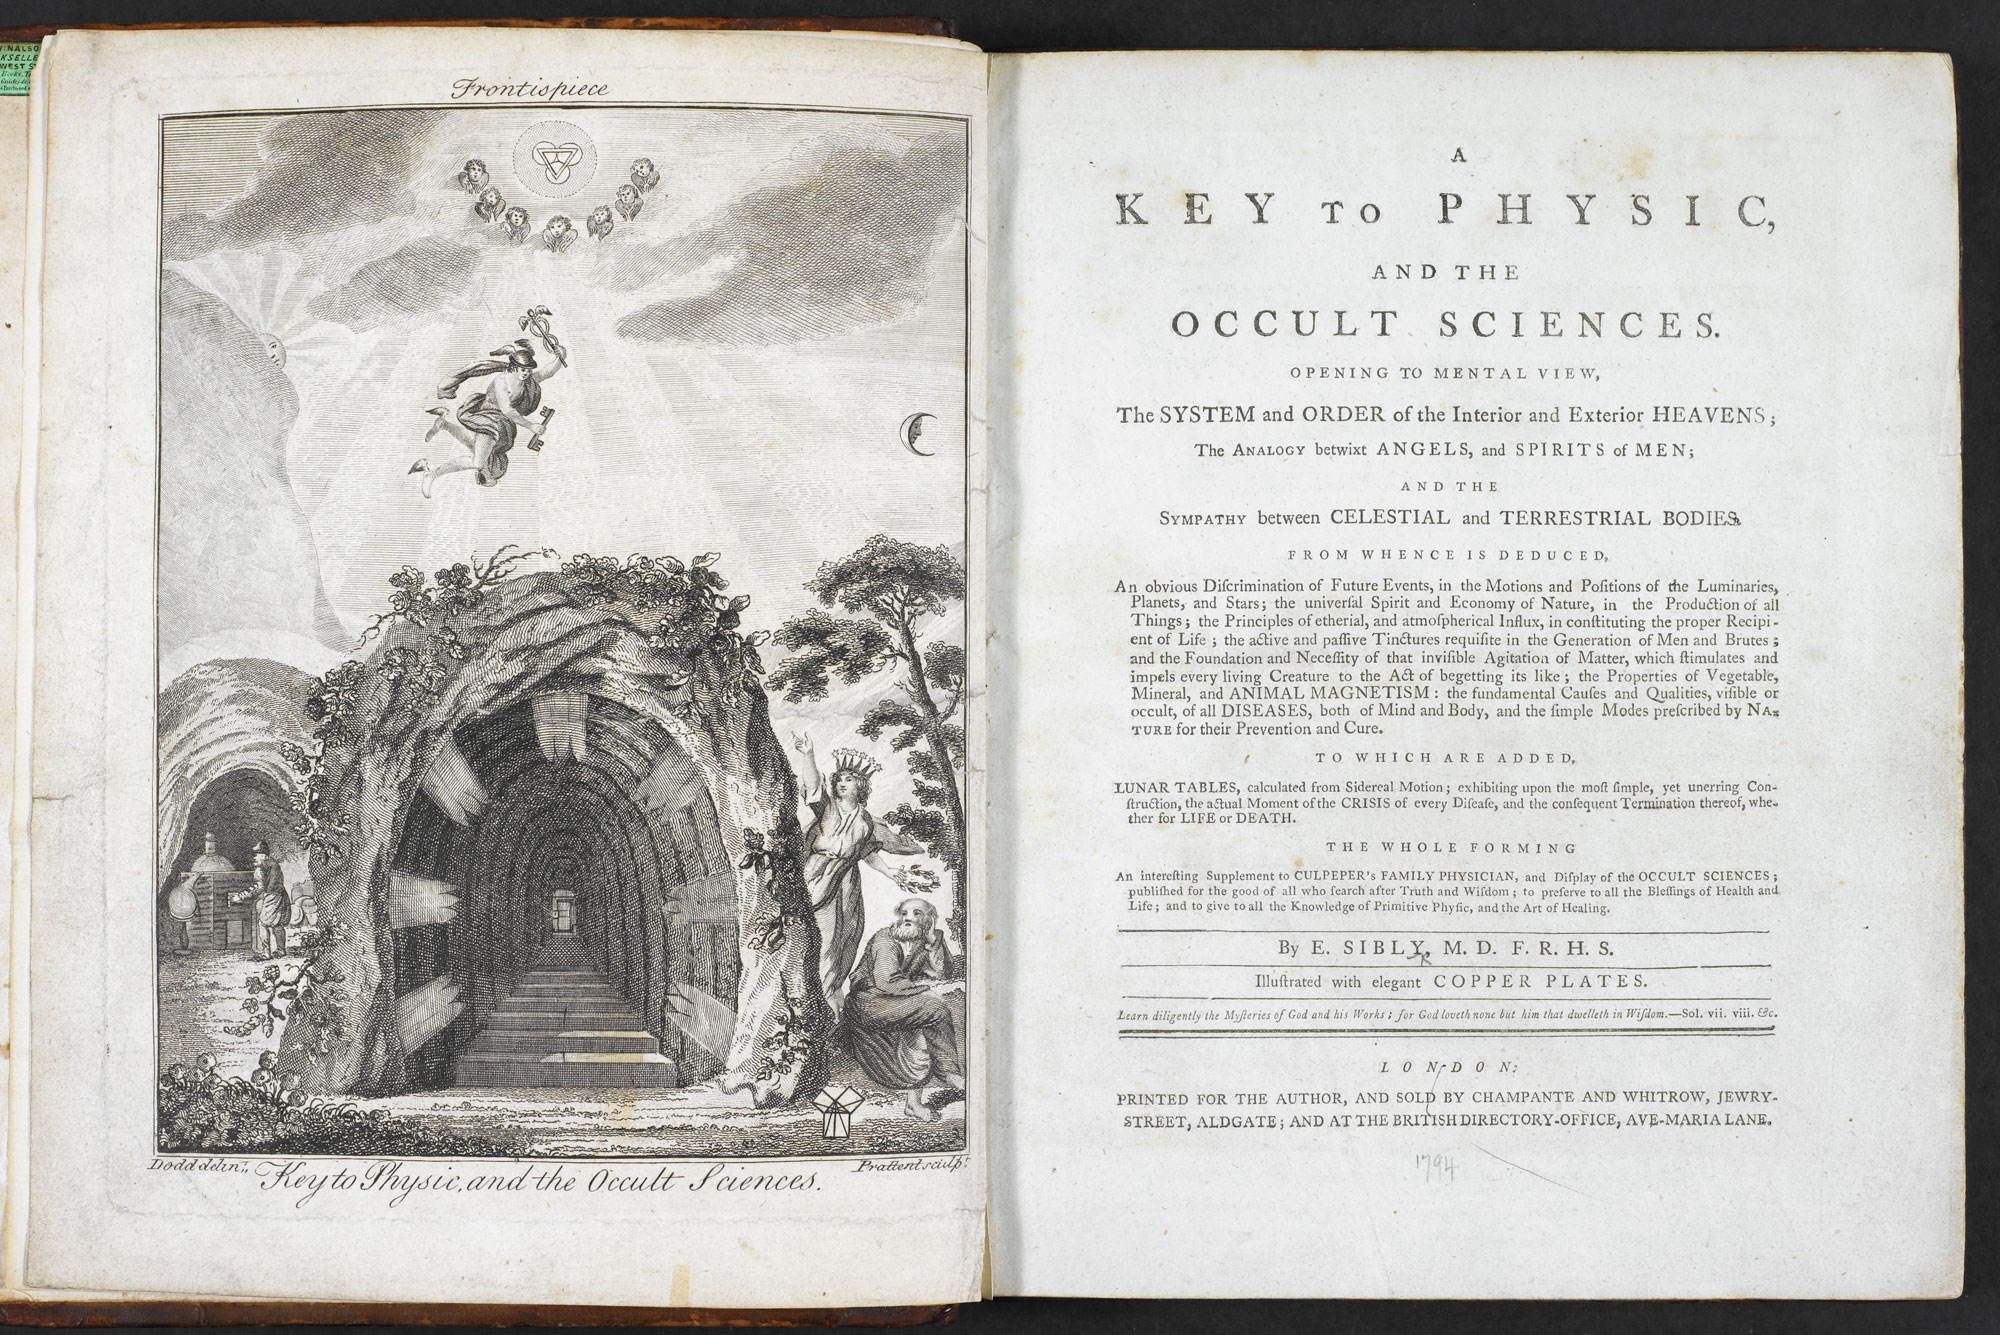 A Key to Physic, and the Occult Sciences [page: frontispiece and title page]